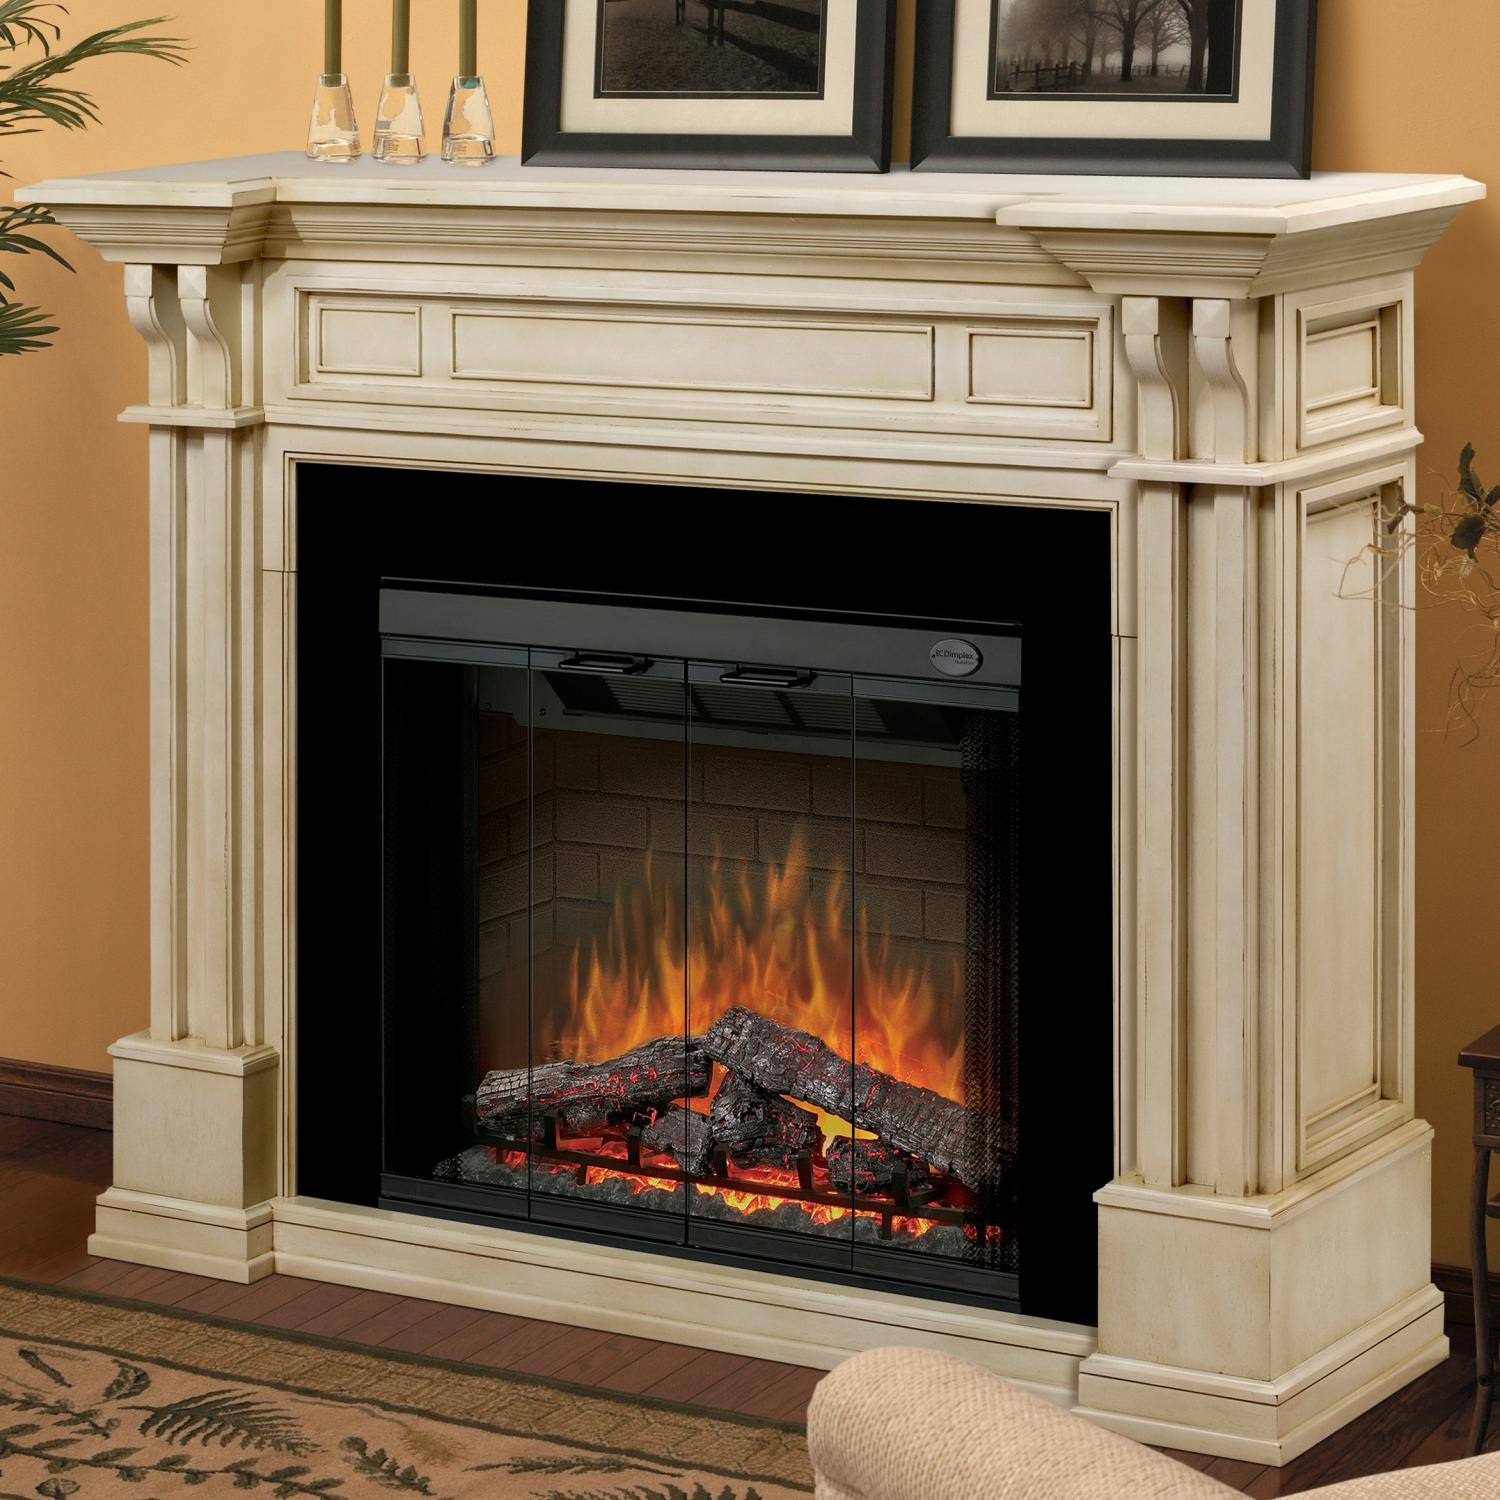 cozy black framed dimplex electric fireplaces with white mantel kit before the orange wall matched with wooden floor with rug for family room decor ideas